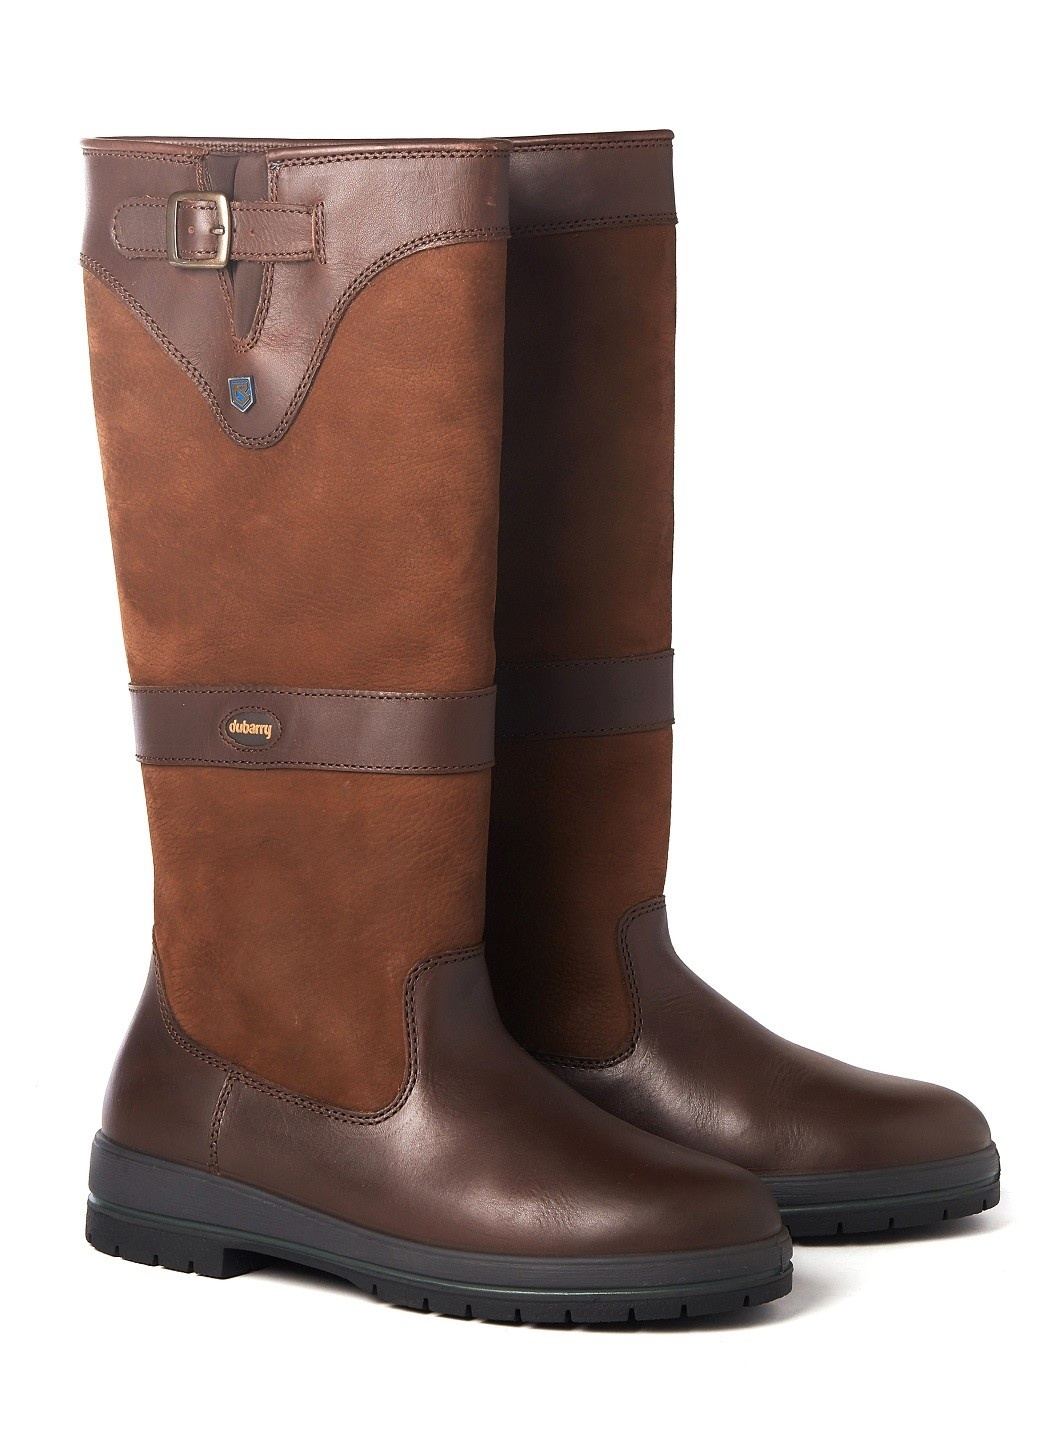 Dubarry Tipperary - Walnut-1